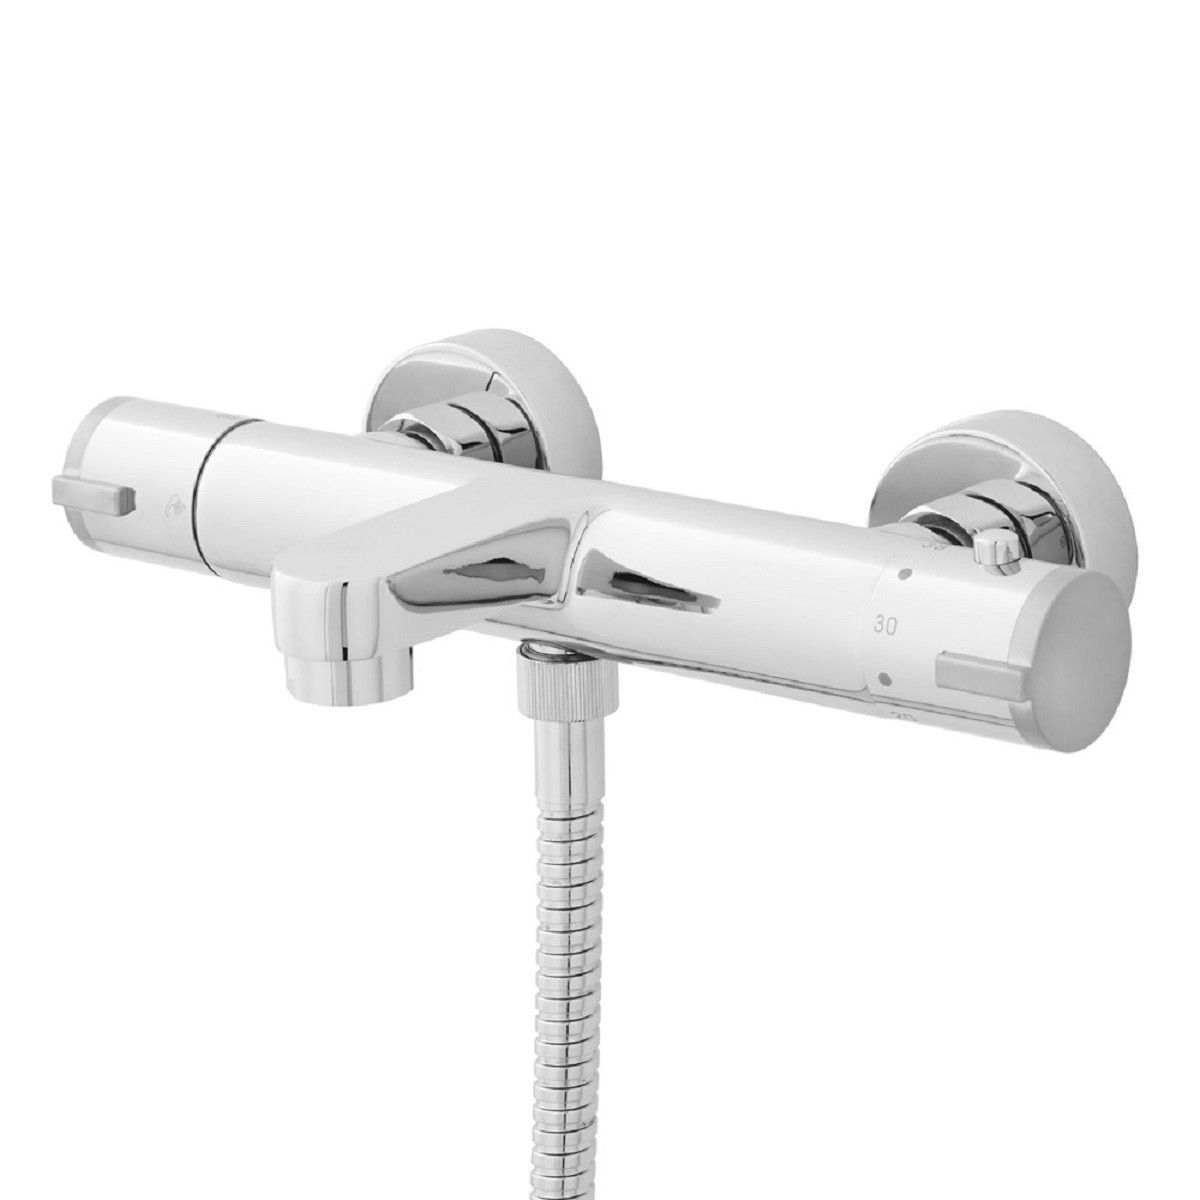 Bath Shower Mixer Taps Thermostatic ultra thermostatic bath shower mixer tap vbs021 | design | pinterest